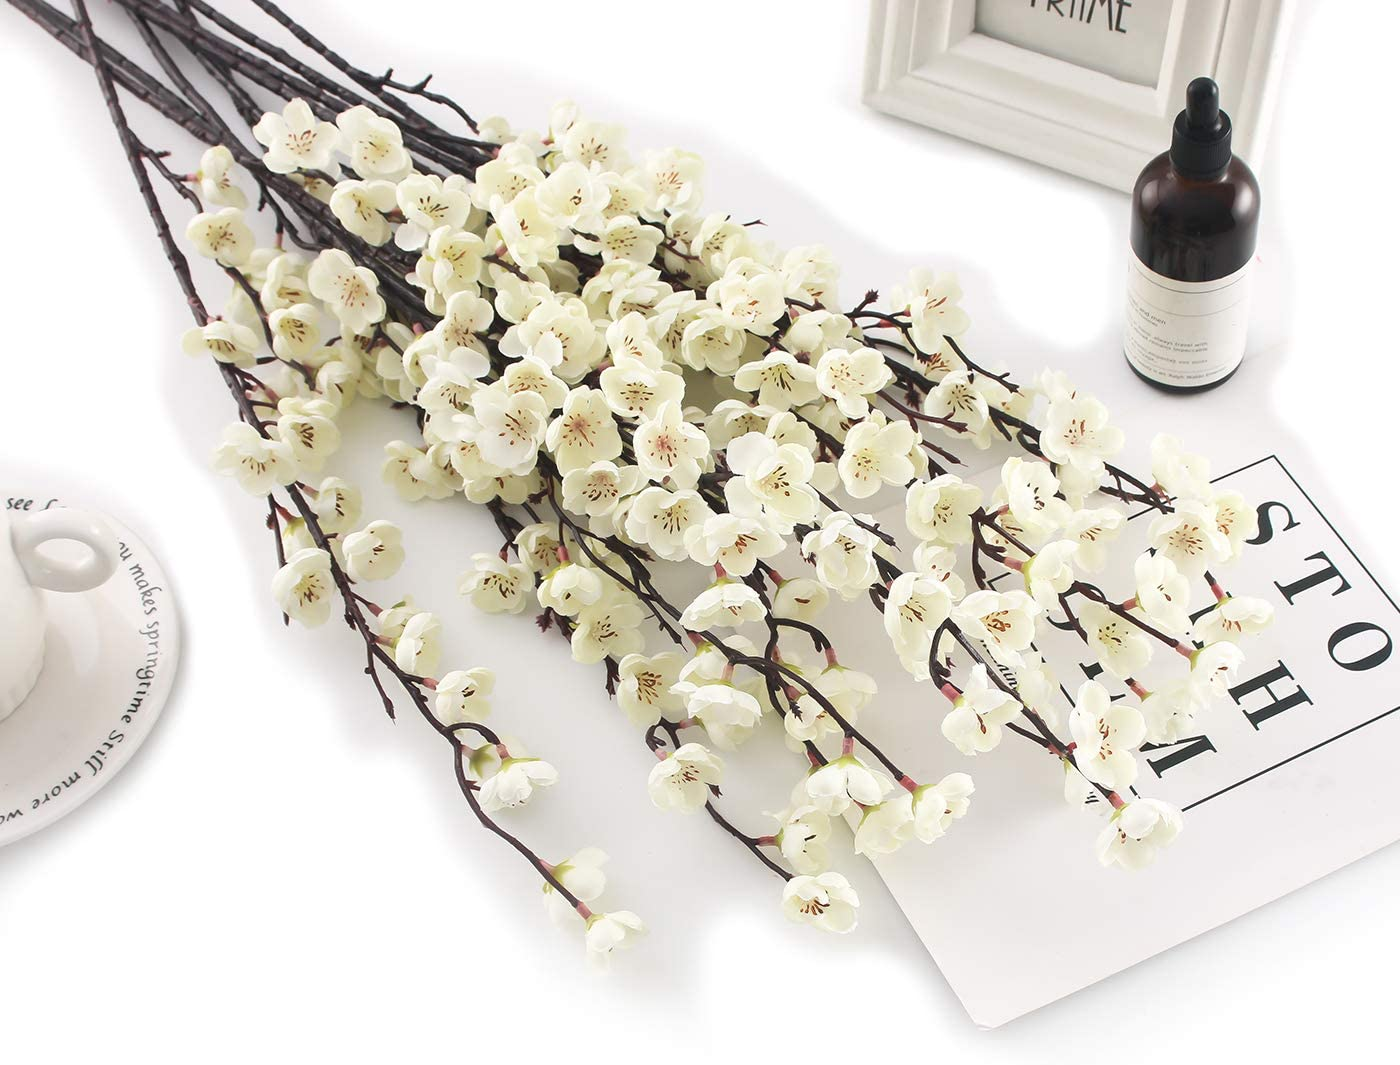 Charmly 5 Pcs Artificial Plum Blossom Fake Wintersweet Long Stem Plastic Flowers Home Hotel Office Wedding Party Garden Decor 27.5'' High White